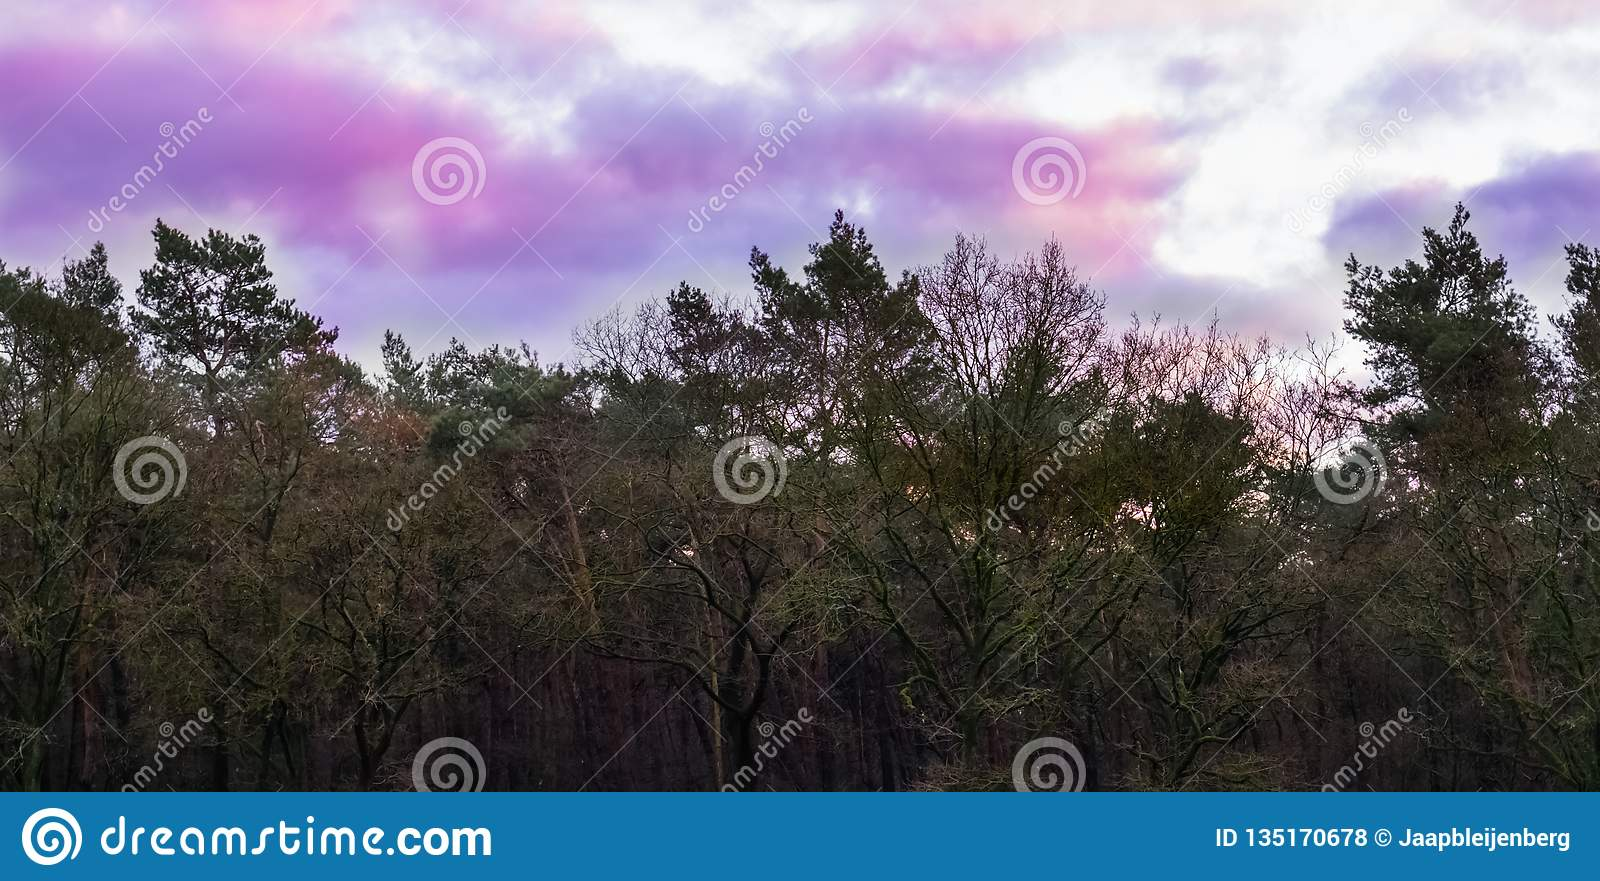 Weather phenomenon in the sky, pink and purple nacreous clouds, forest landscape background